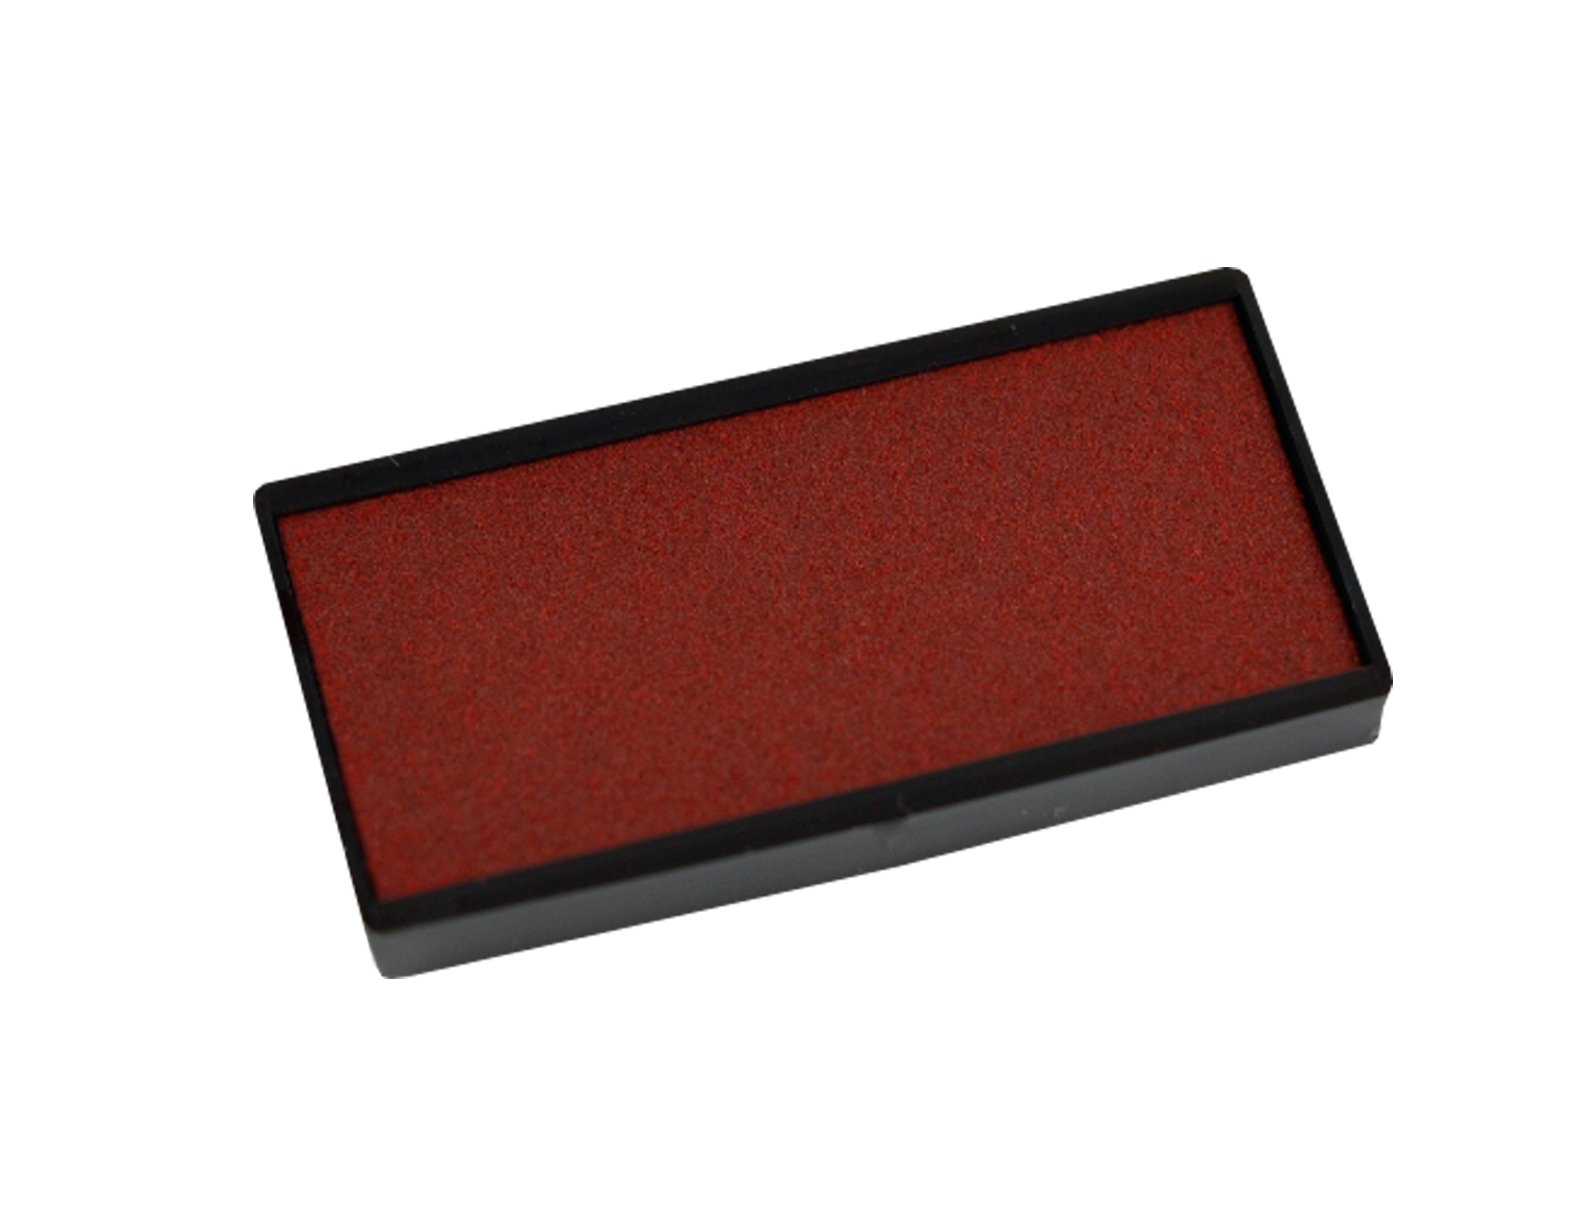 """Cosco 065318 Premium Replacement Ink Pad For Self-Inking COSCO 2000 Plus P40 Stamp,  1-1/4"""" x 2-1/2"""", Red Ink"""